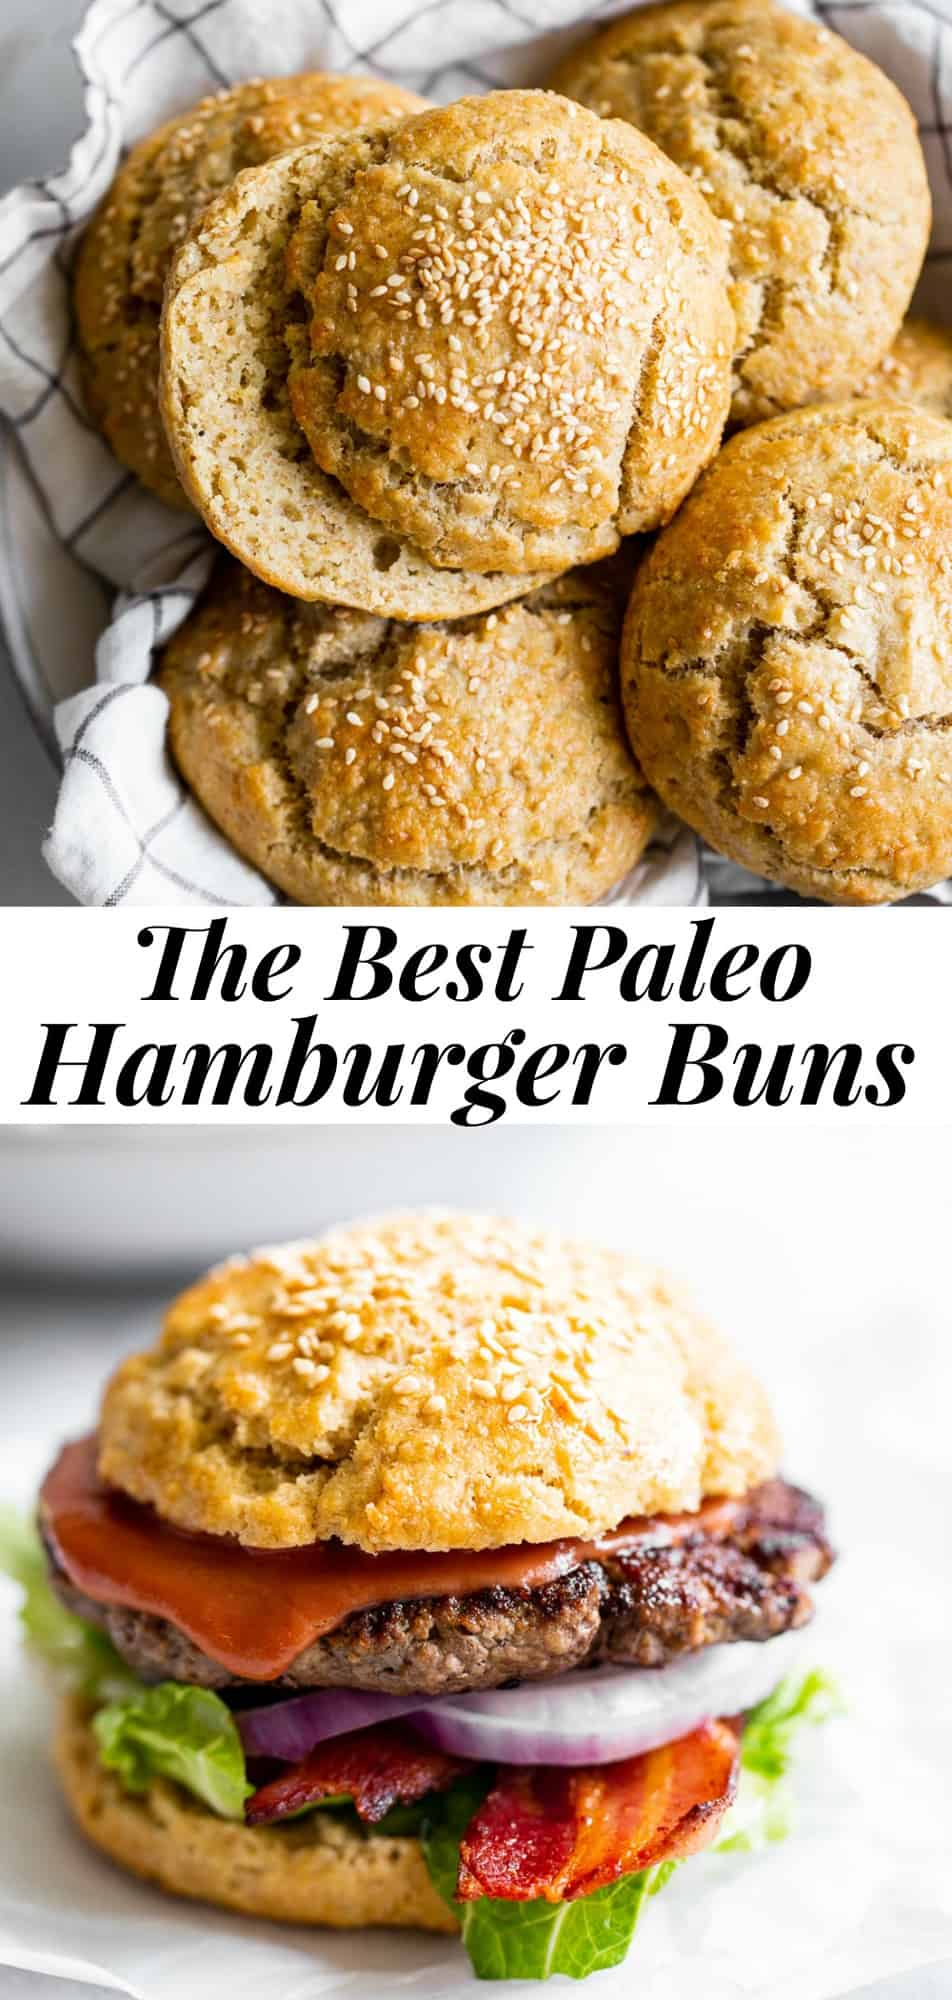 Look no further for the best paleo hamburger buns - they're here!  After lots of testing this recipe hits all the right points - soft chewy texture inside, crusty outside and bendable so you can pack in lots of burger toppings and actually pick it up and take a bite.  Gluten free, grain free, family approved, made all in one bowl and super easy! #paleo #paleobaking #cleaneating #glutenfreebaking